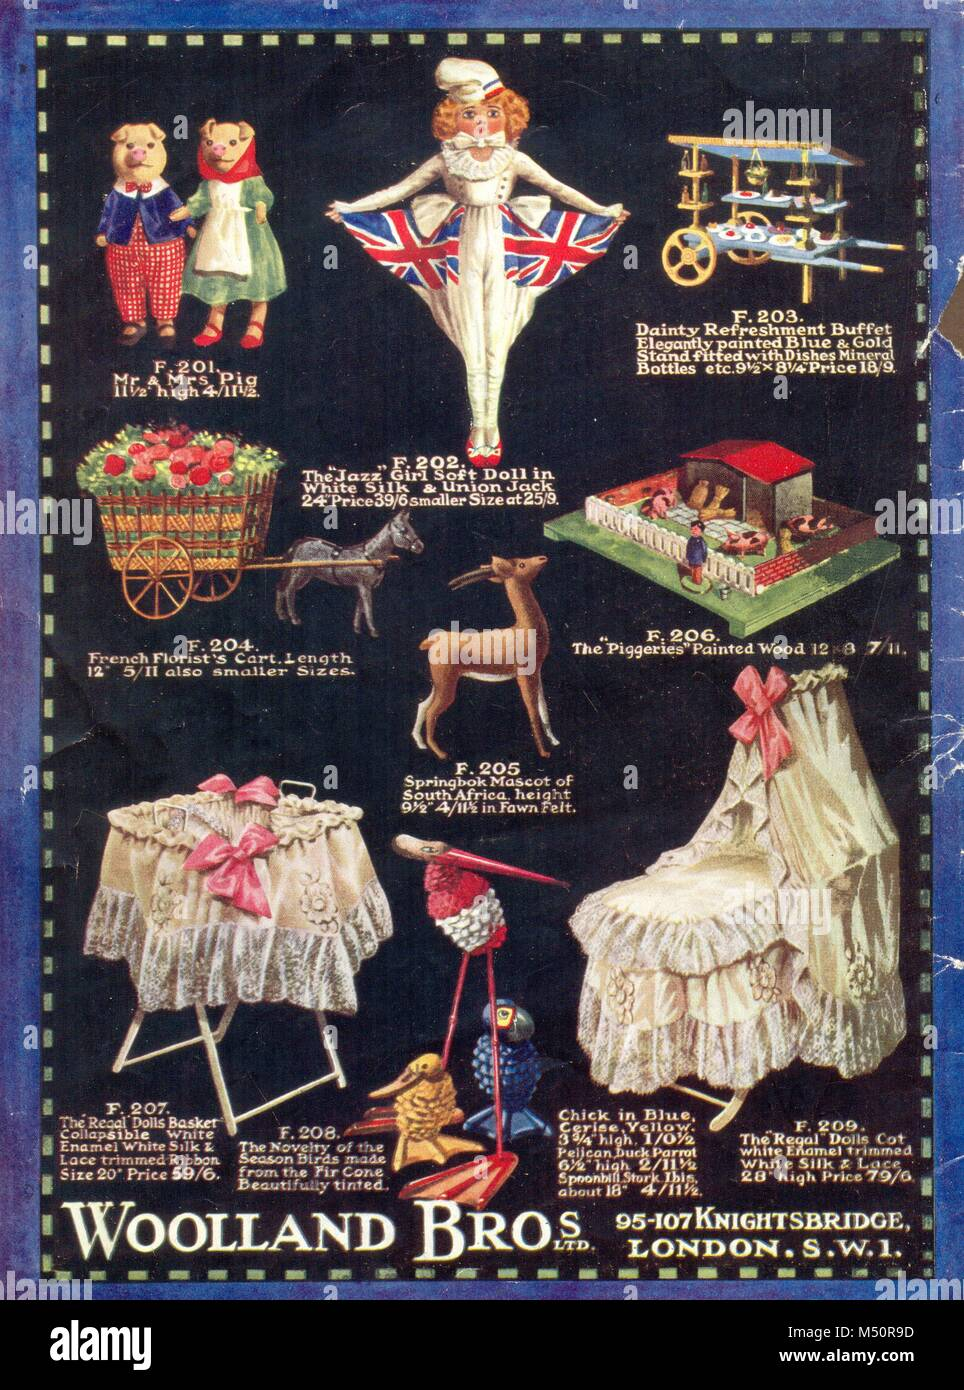 Christmas gift catalogue cover for Woolland Bros. Ltd. 1919 Stock ...